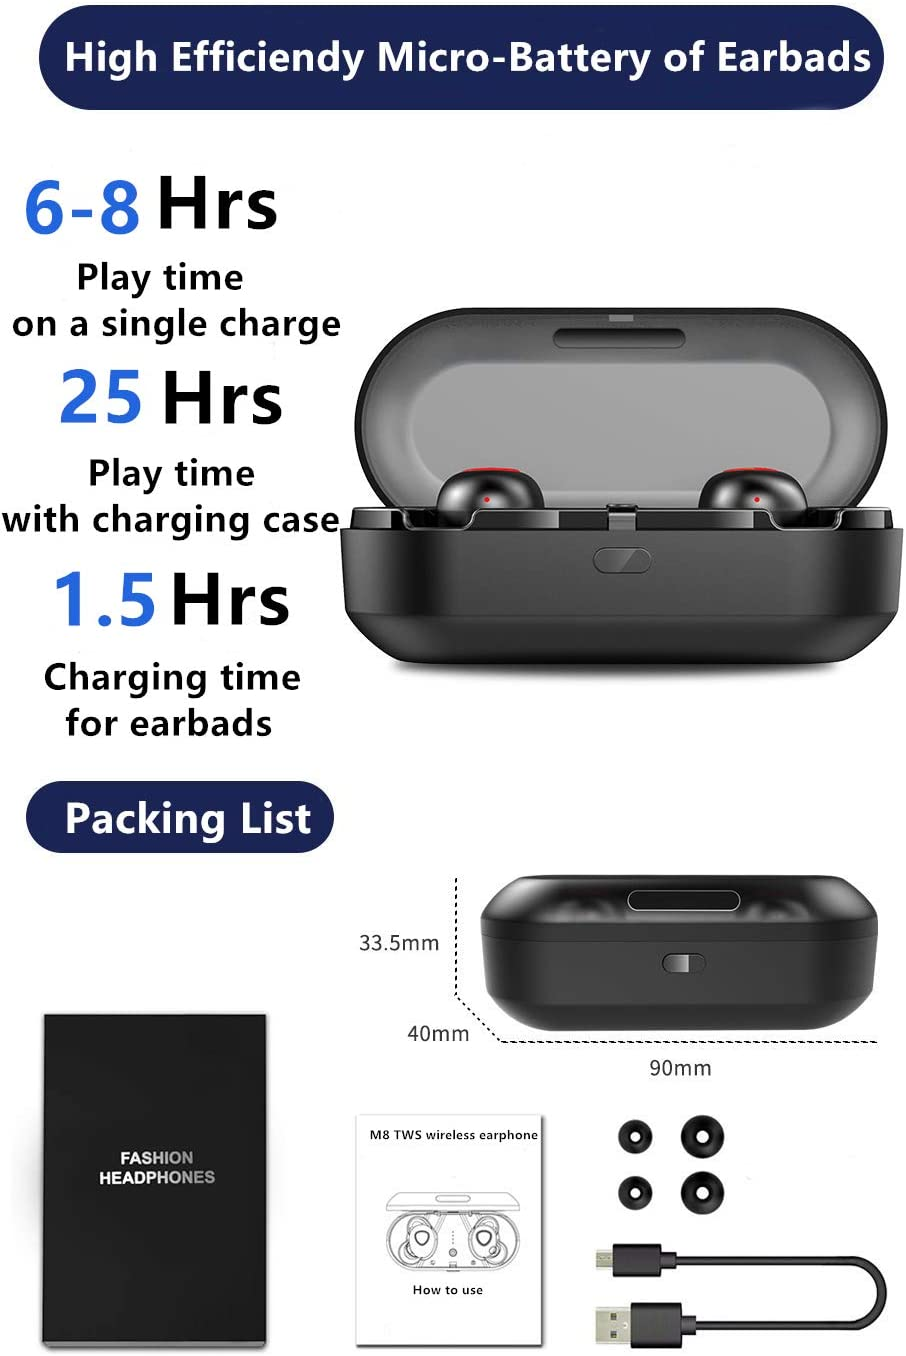 Wireless Earbuds,Simlux Bluetooth 5.0 Headphones TWS Easy-Pair 3D Noise Canceling in-Ear Built-in Mic Earphones,Waterproof Sports Bluetooth Headset with Charging Case Black